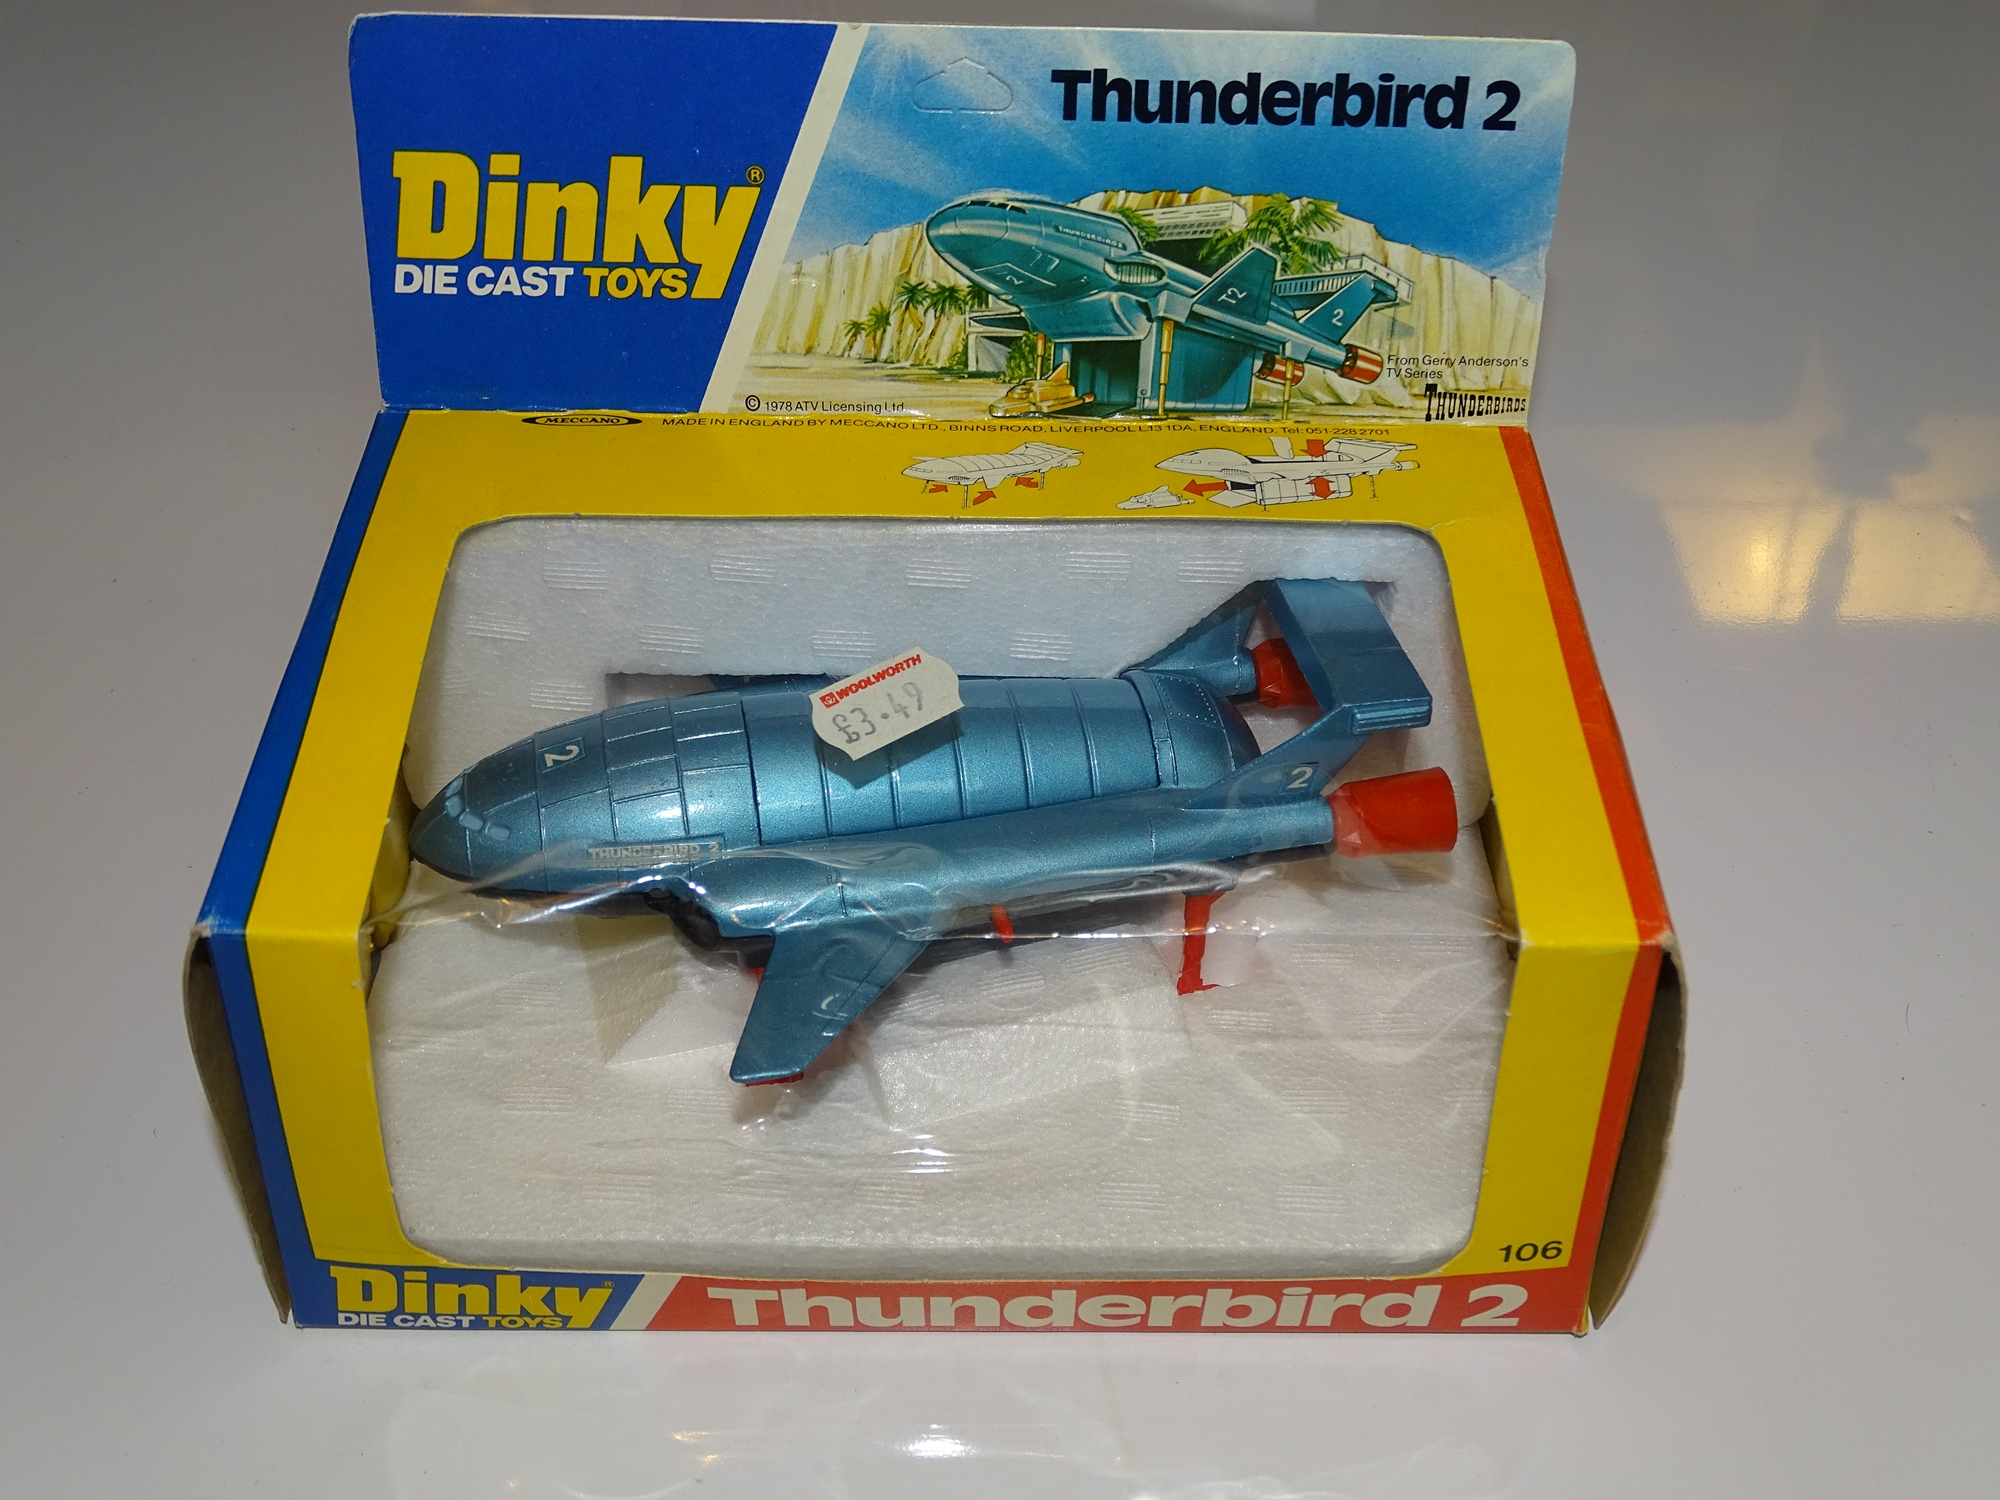 Lot 31 - A DINKY 106 THUNDERBIRD 2 - Metallic Blue with black base and red legs version - E - Appears